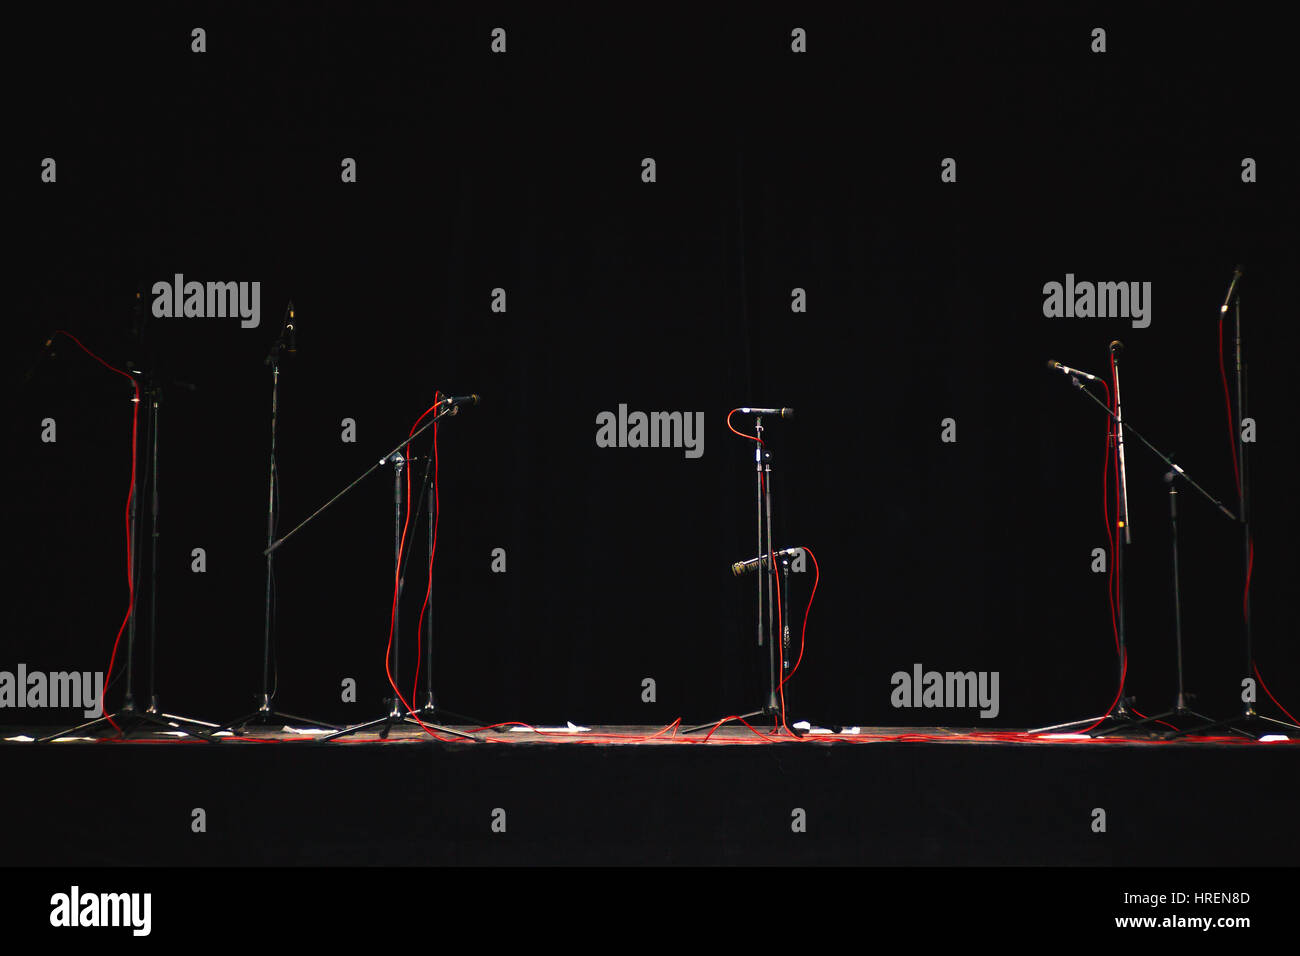 Concert stage details, just a few microphones on stands and red cords ready for live performance. - Stock Image